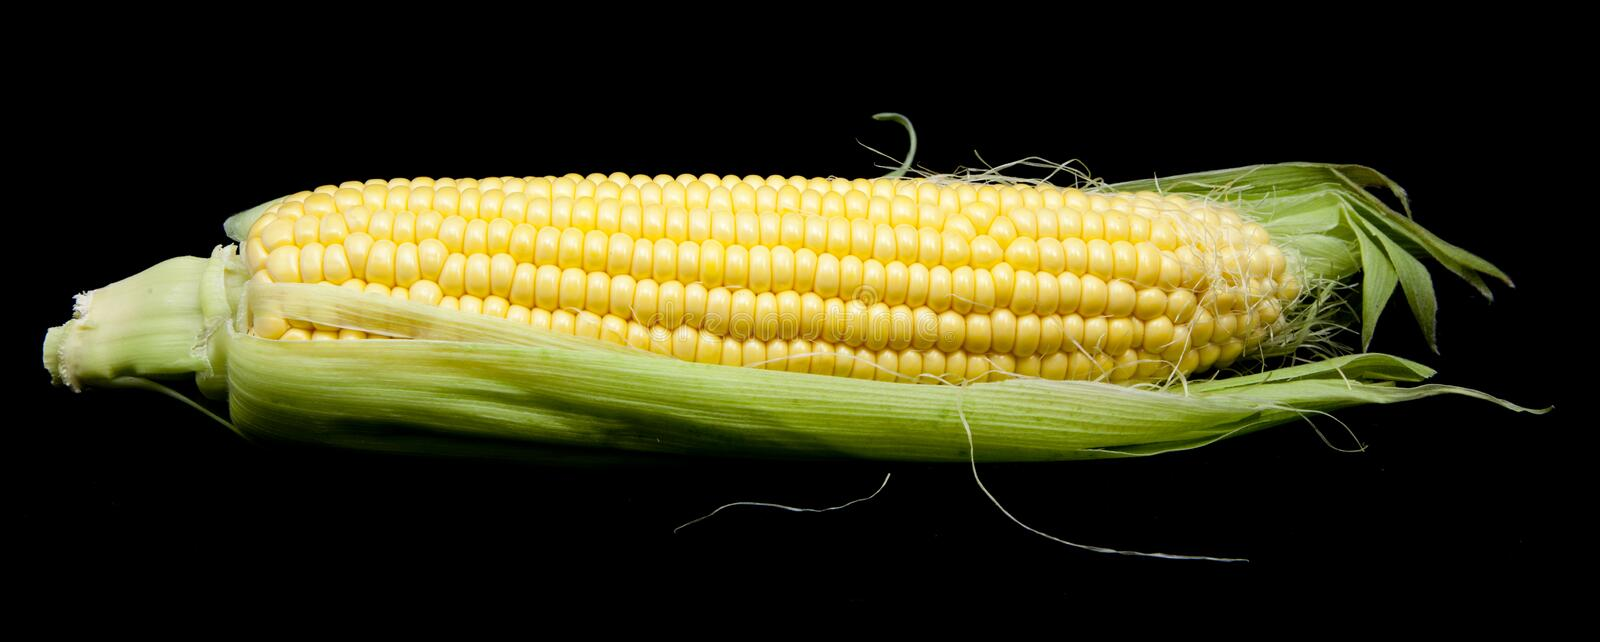 Download Corn stock photo. Image of health, whole, green, white - 28152608